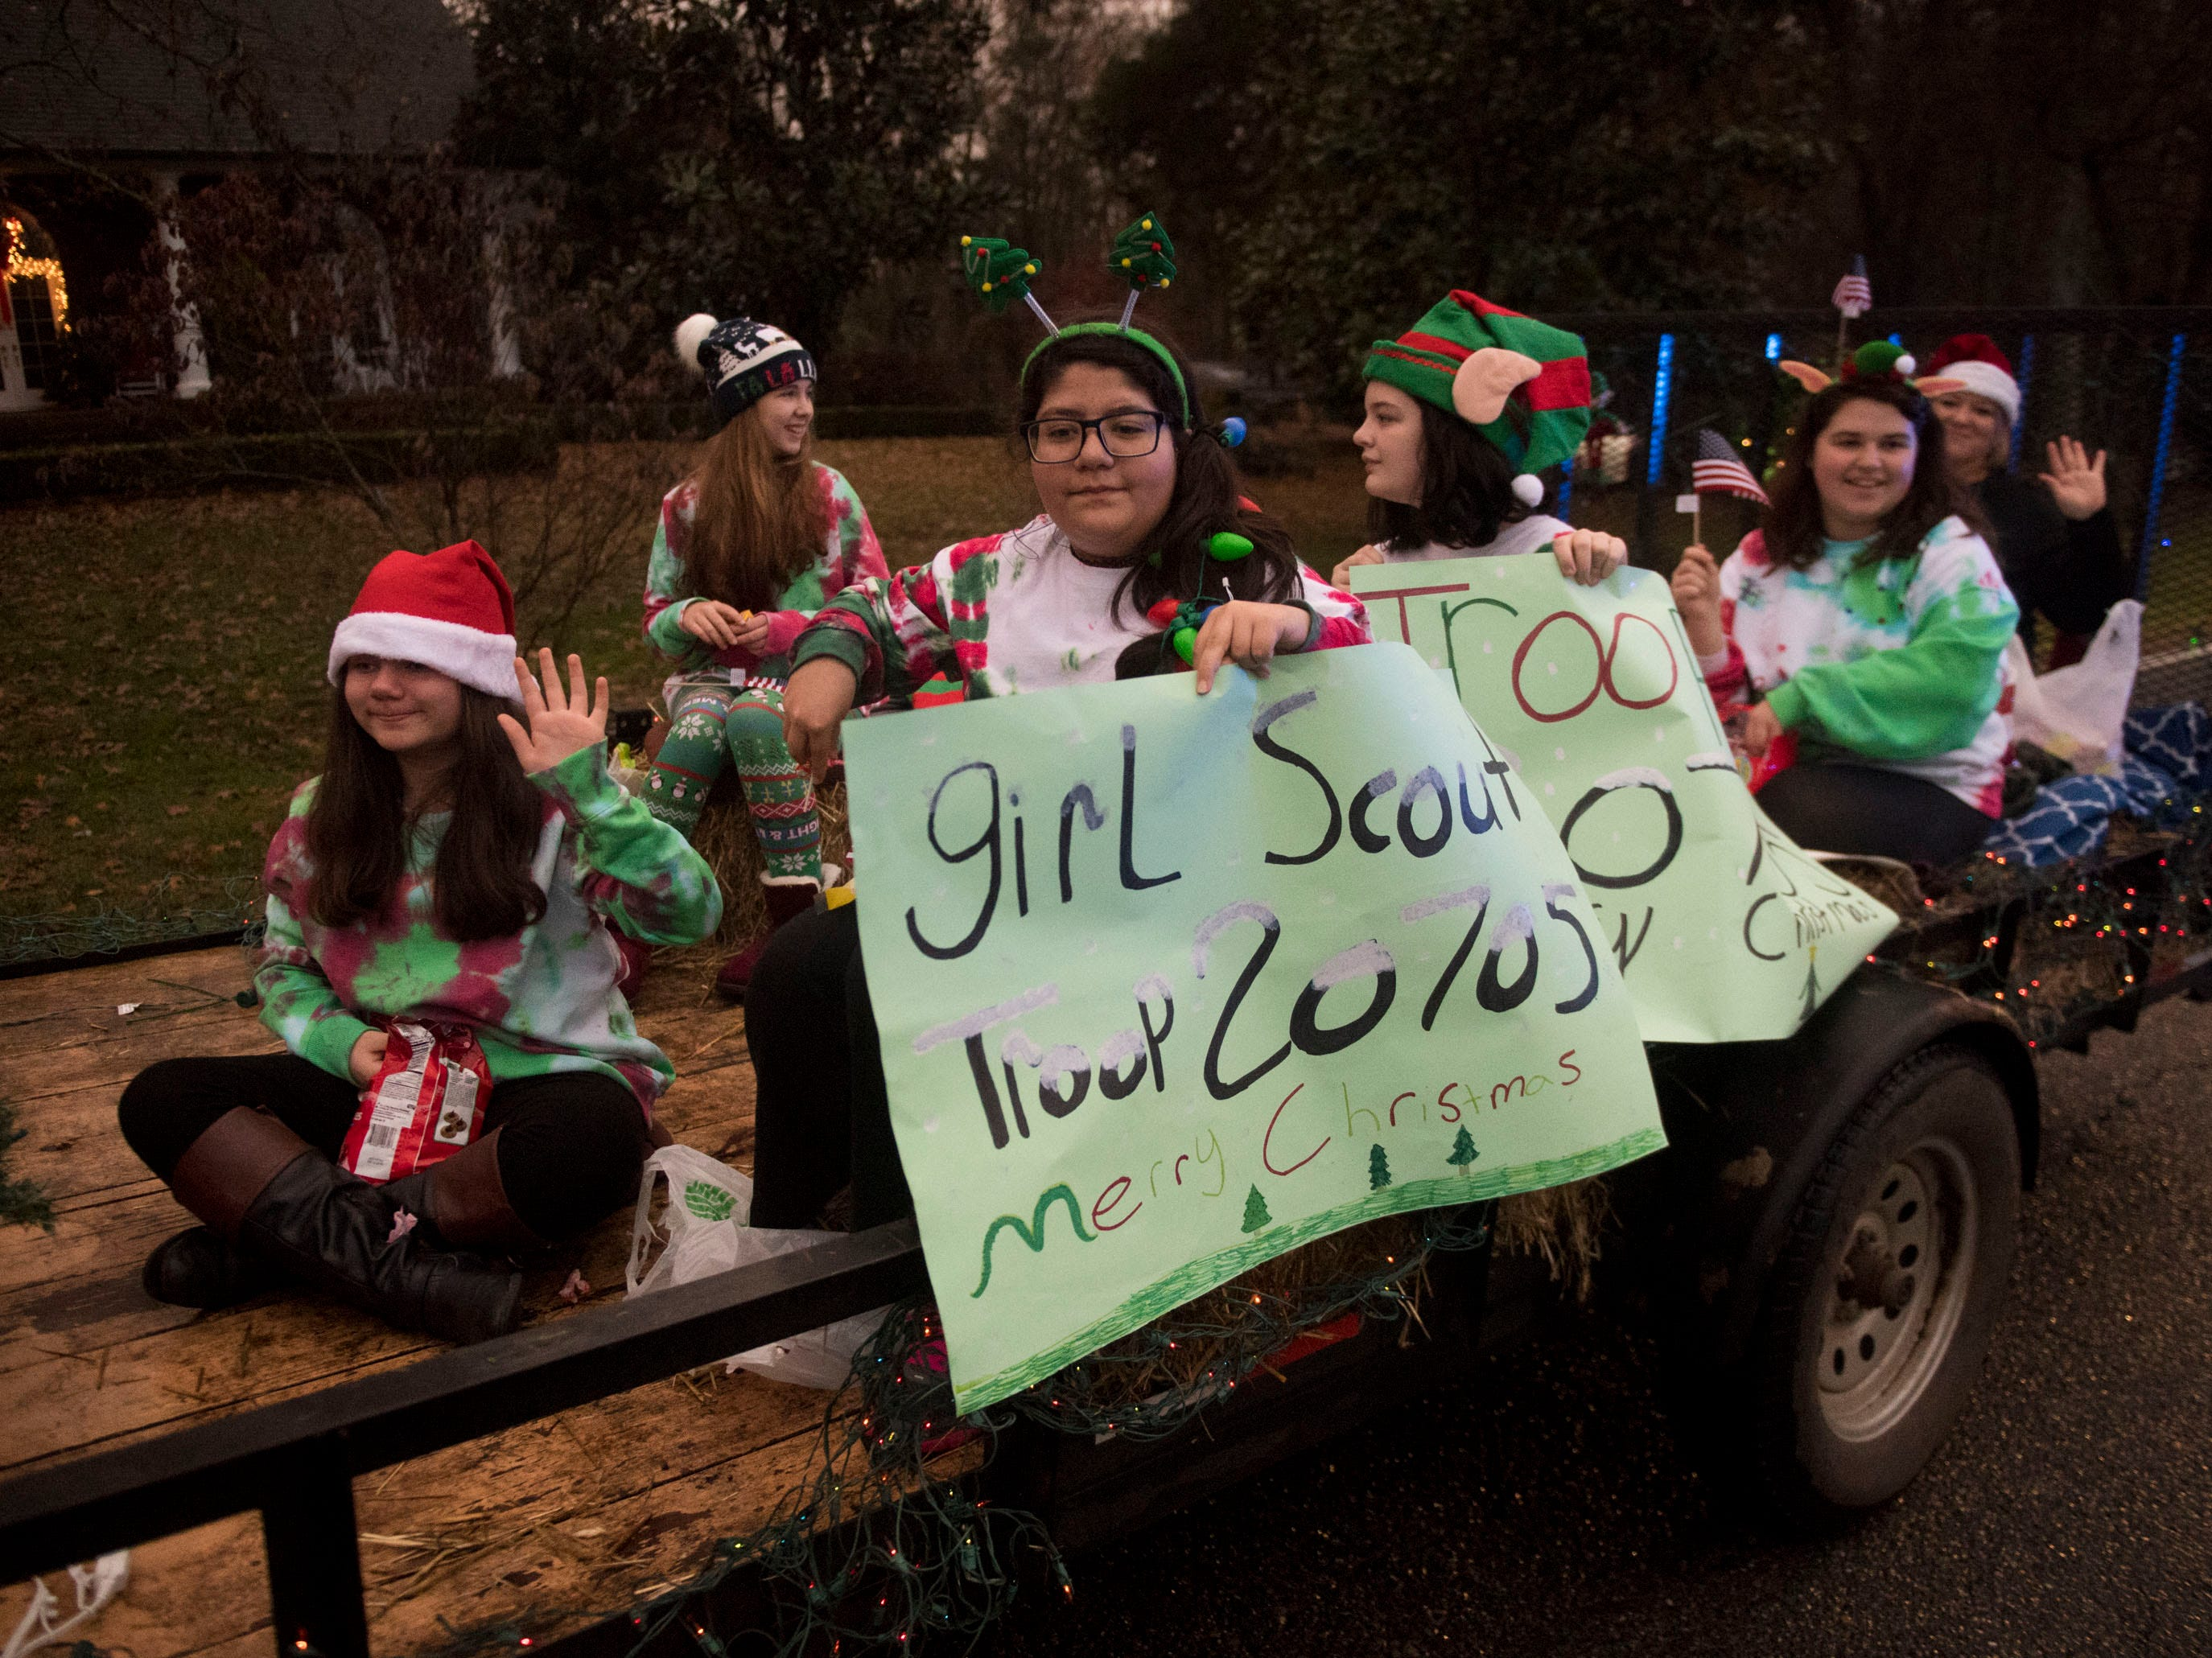 Girl Scout Troop 20705 at the Powell Lions Club Christmas Parade on Saturday, December 1, 2018.